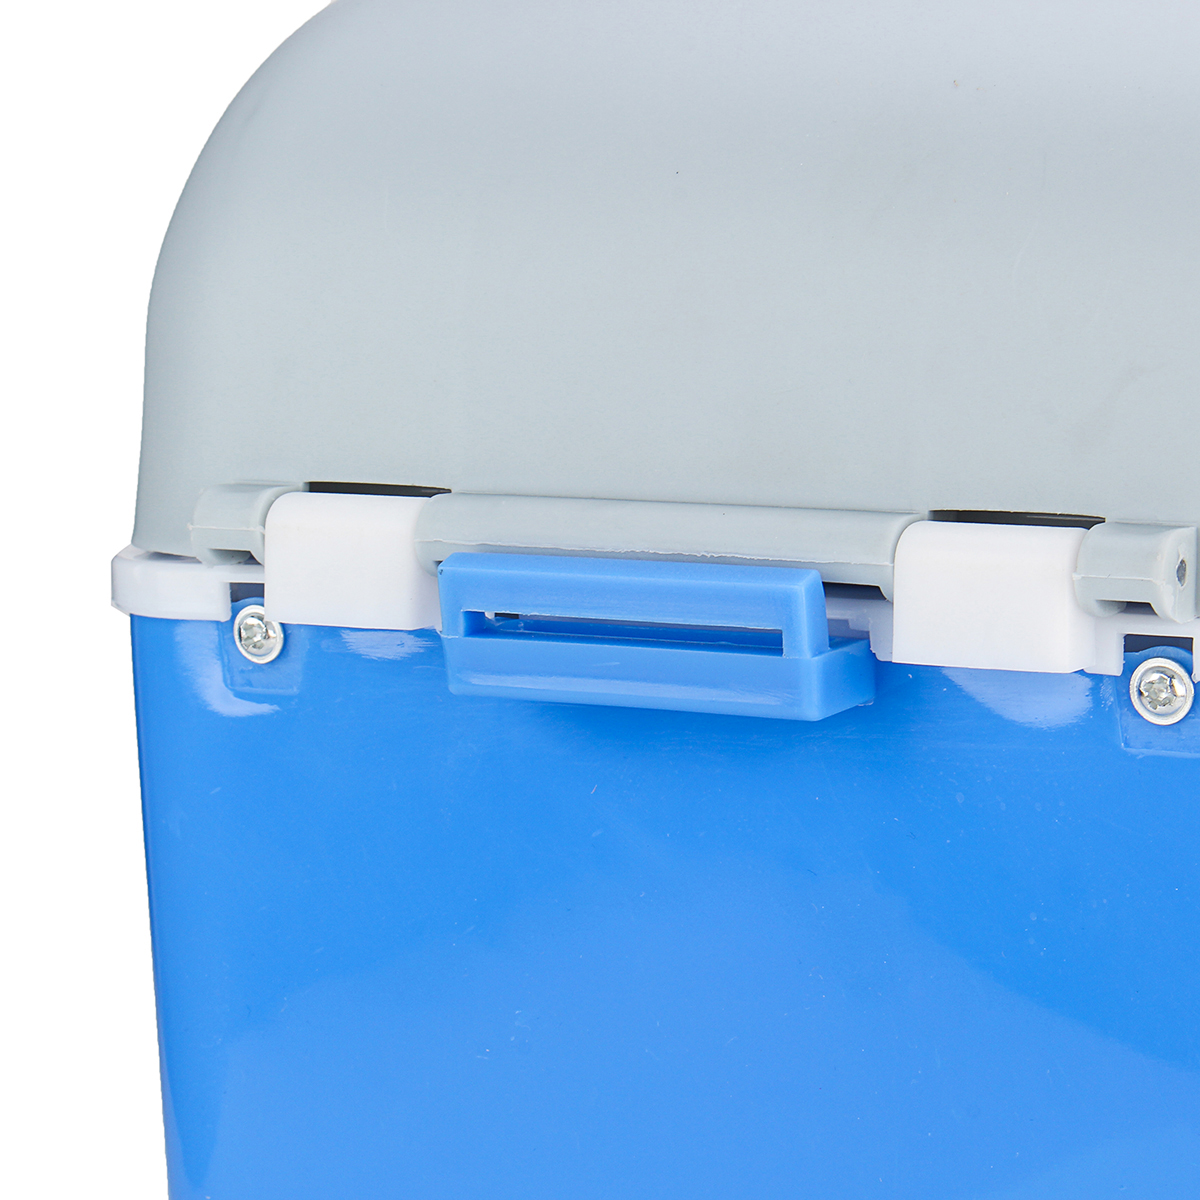 12V 7.5L Blue Portable Car Refrigerator Freezer Cooler Warmer Box Camping Fridge